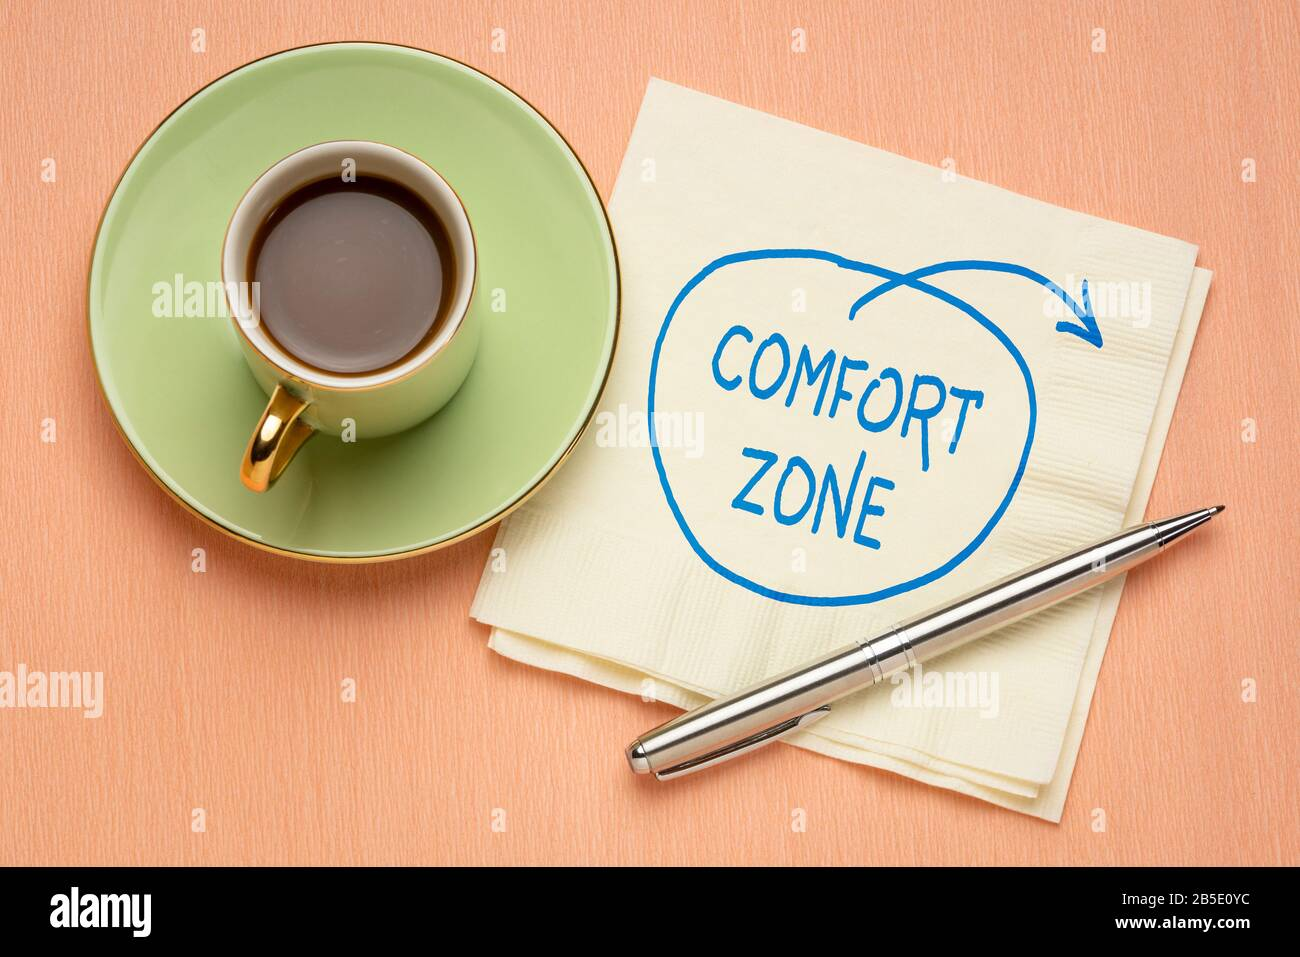 step out of comfort zone concept - motivational doodle on a napkin with a cup of coffee, challenge, motivation and personal development Stock Photo